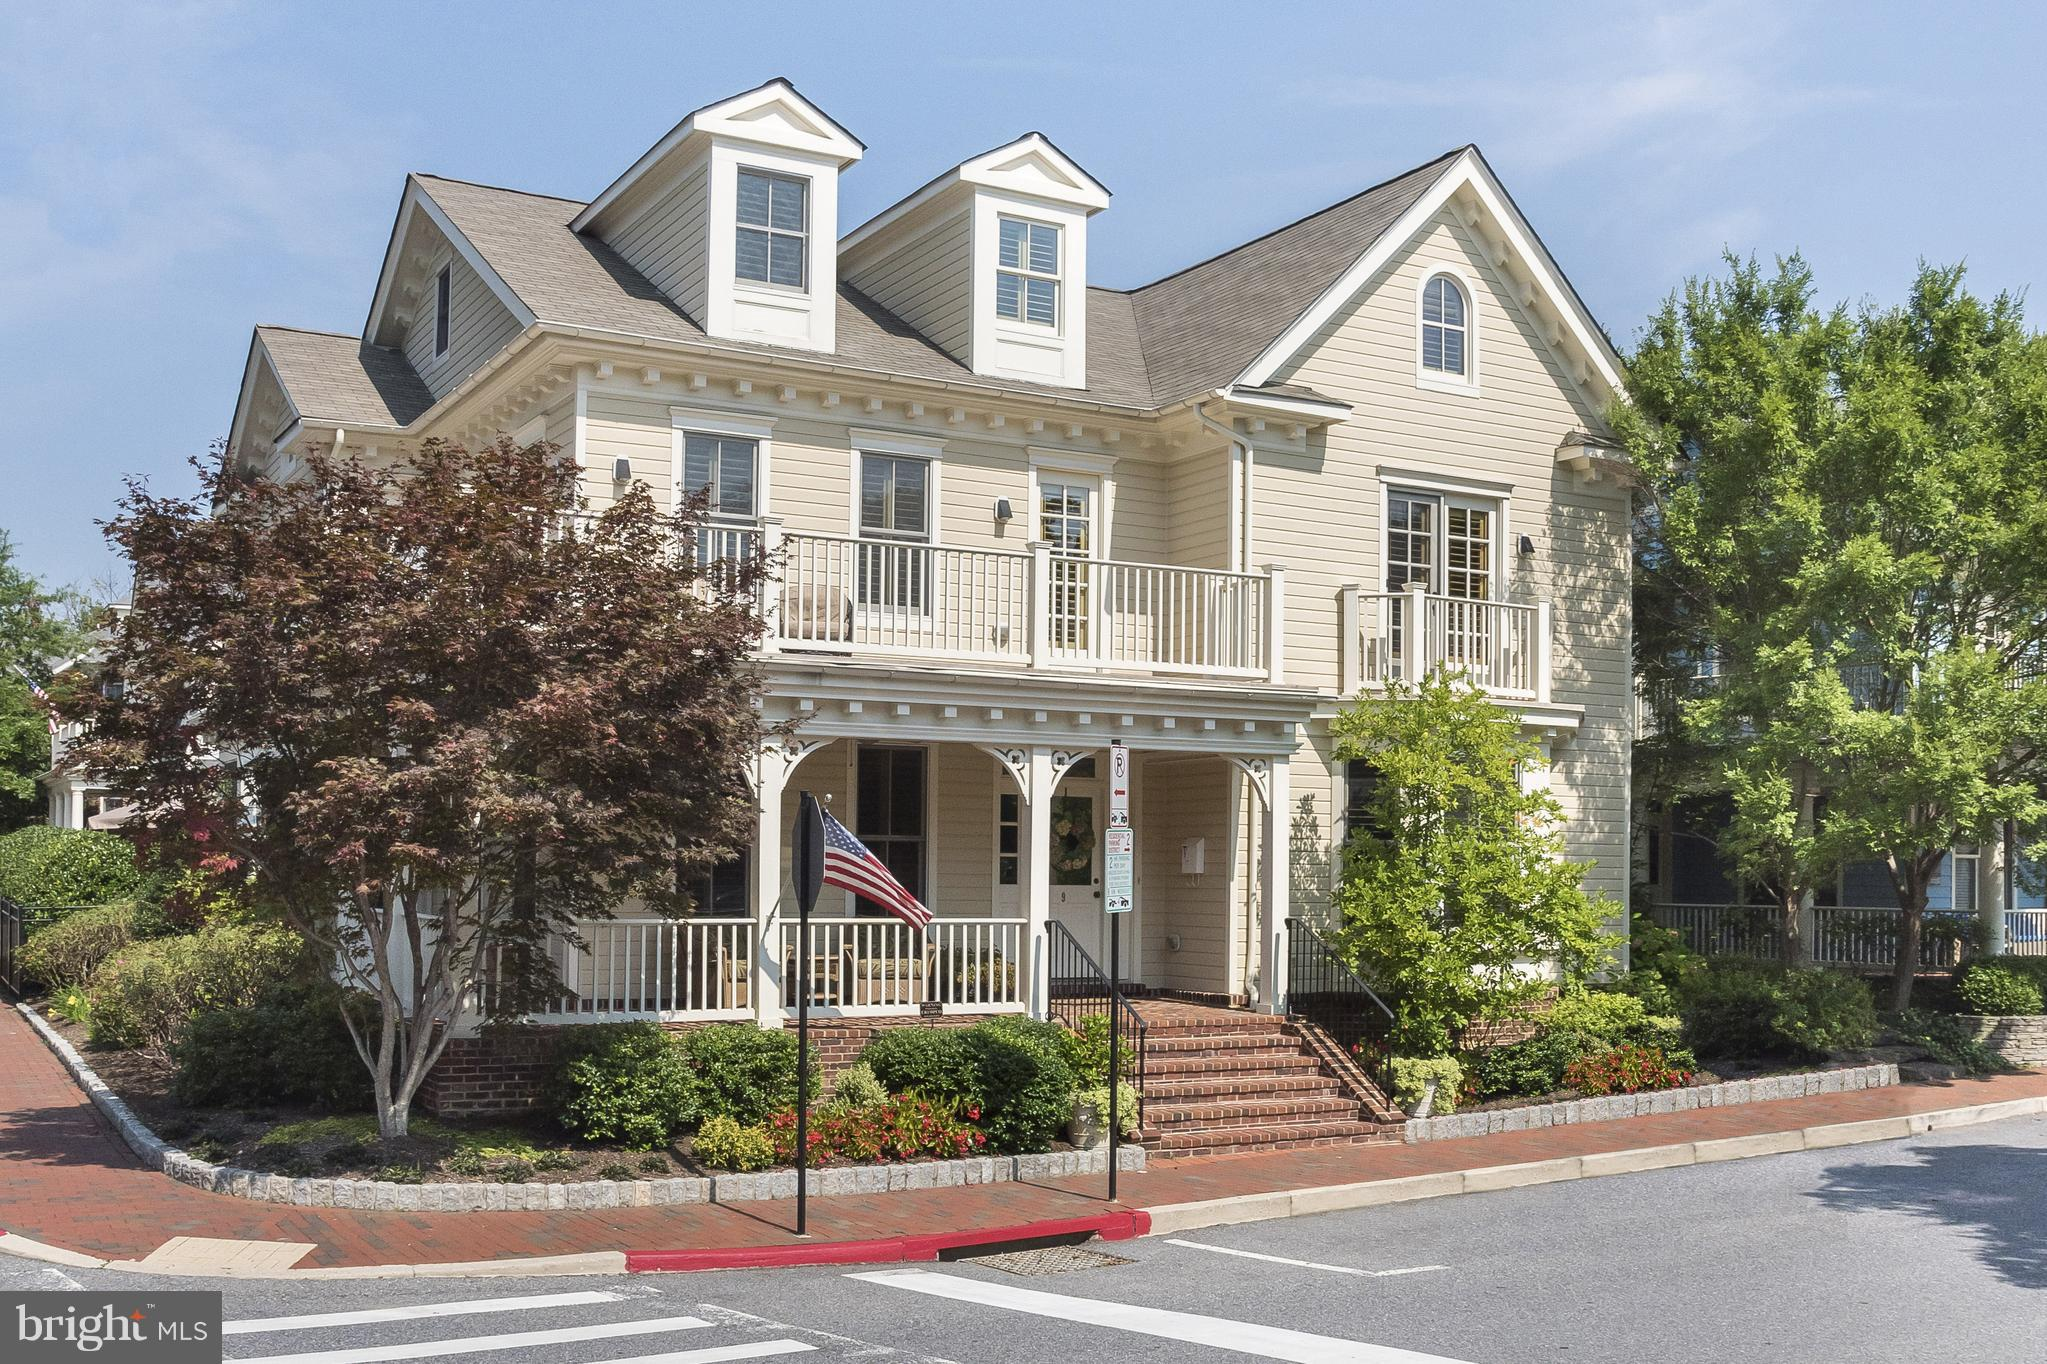 9 SOUTH STREET, ANNAPOLIS, MD 21401